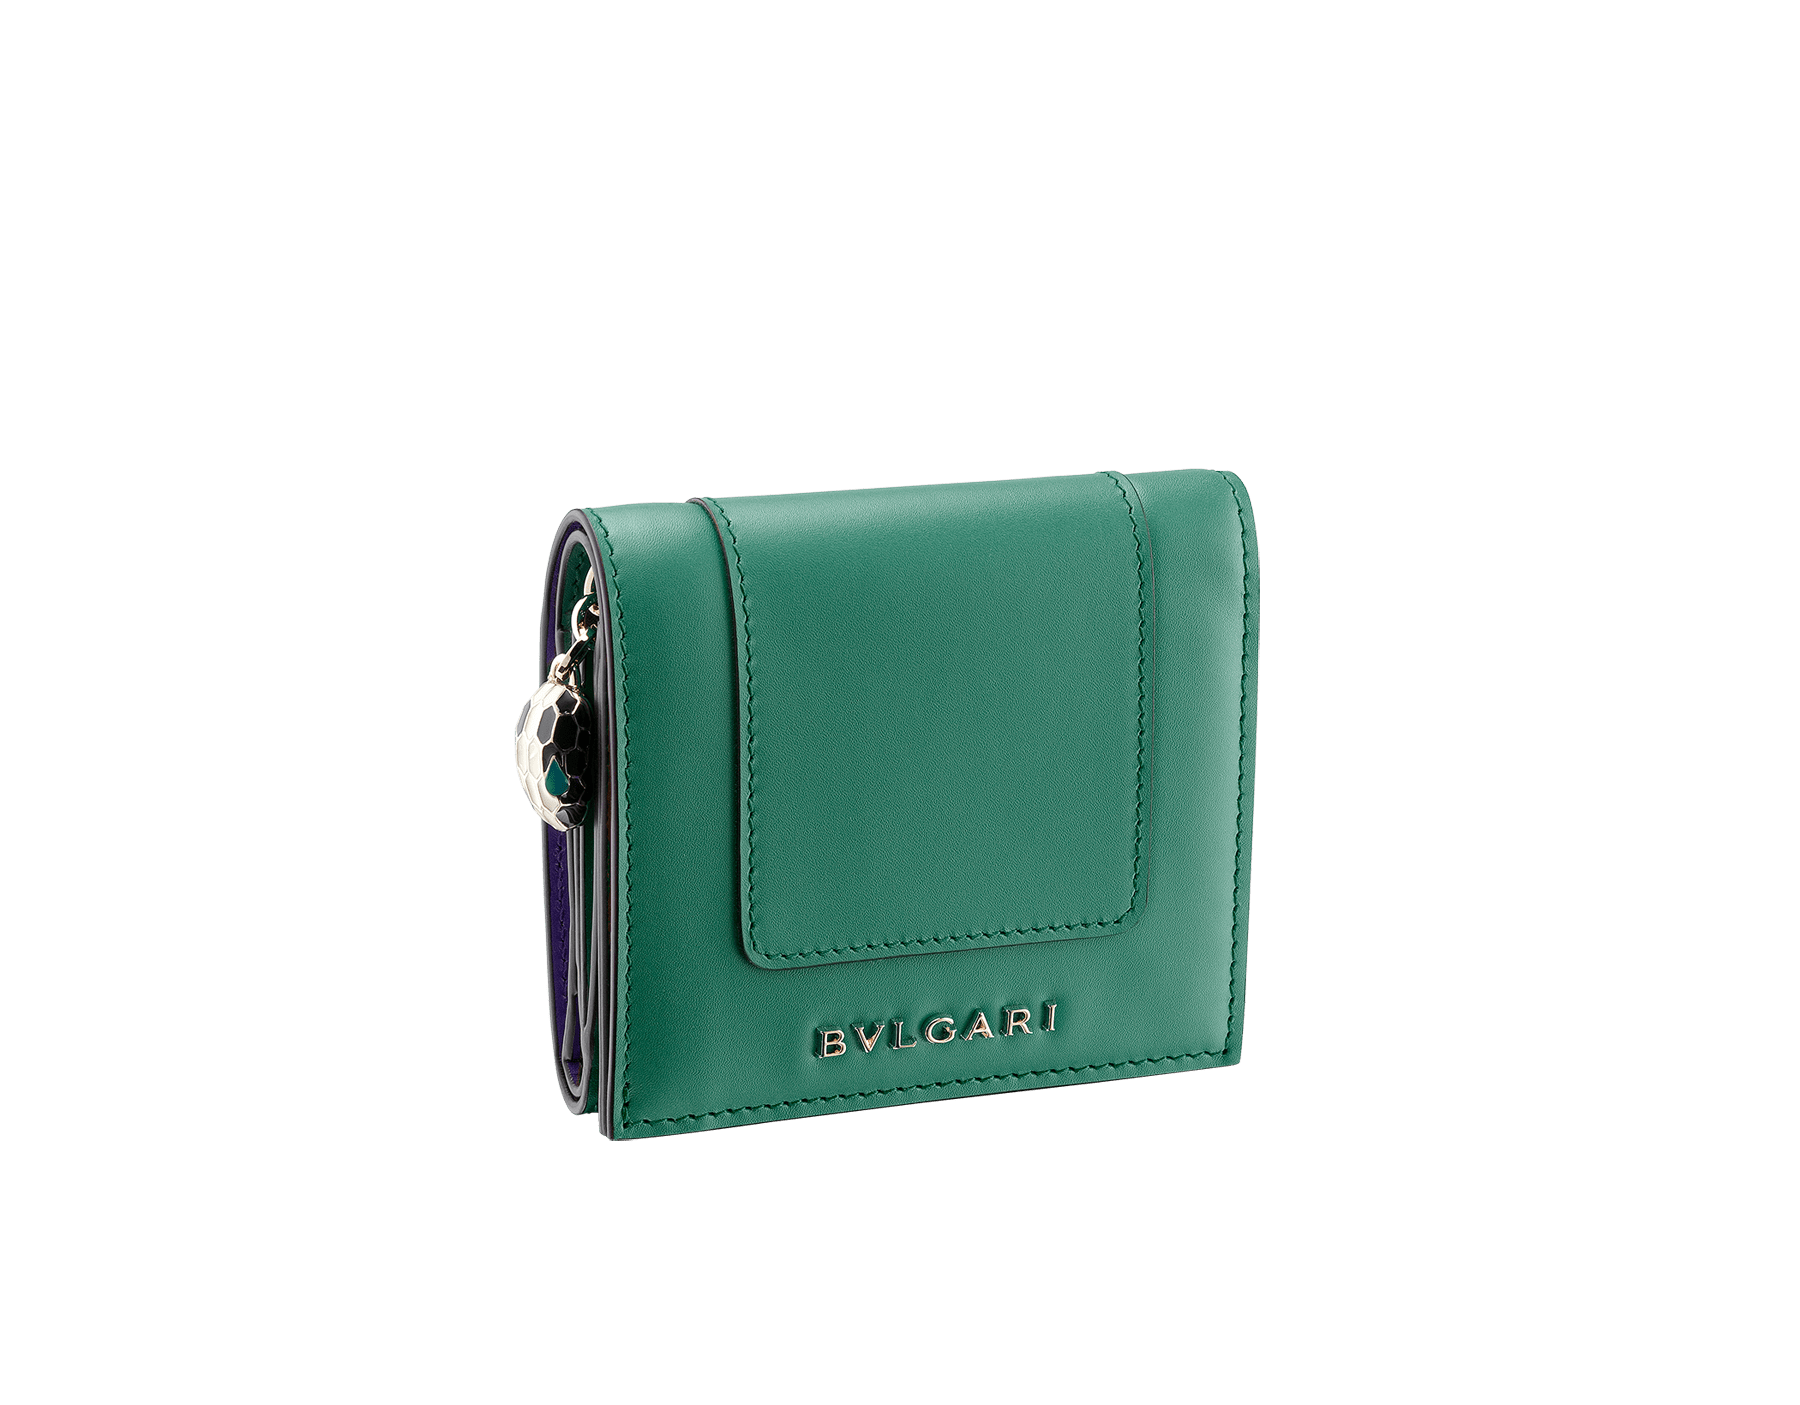 Serpenti Forever super compact wallet in Roman garnet and pink spinel calf leather. Iconic snakehead stud closure in black and white enamel with green malachite enamel eyes. SEA-SUPERCOMPACT-CLa image 1